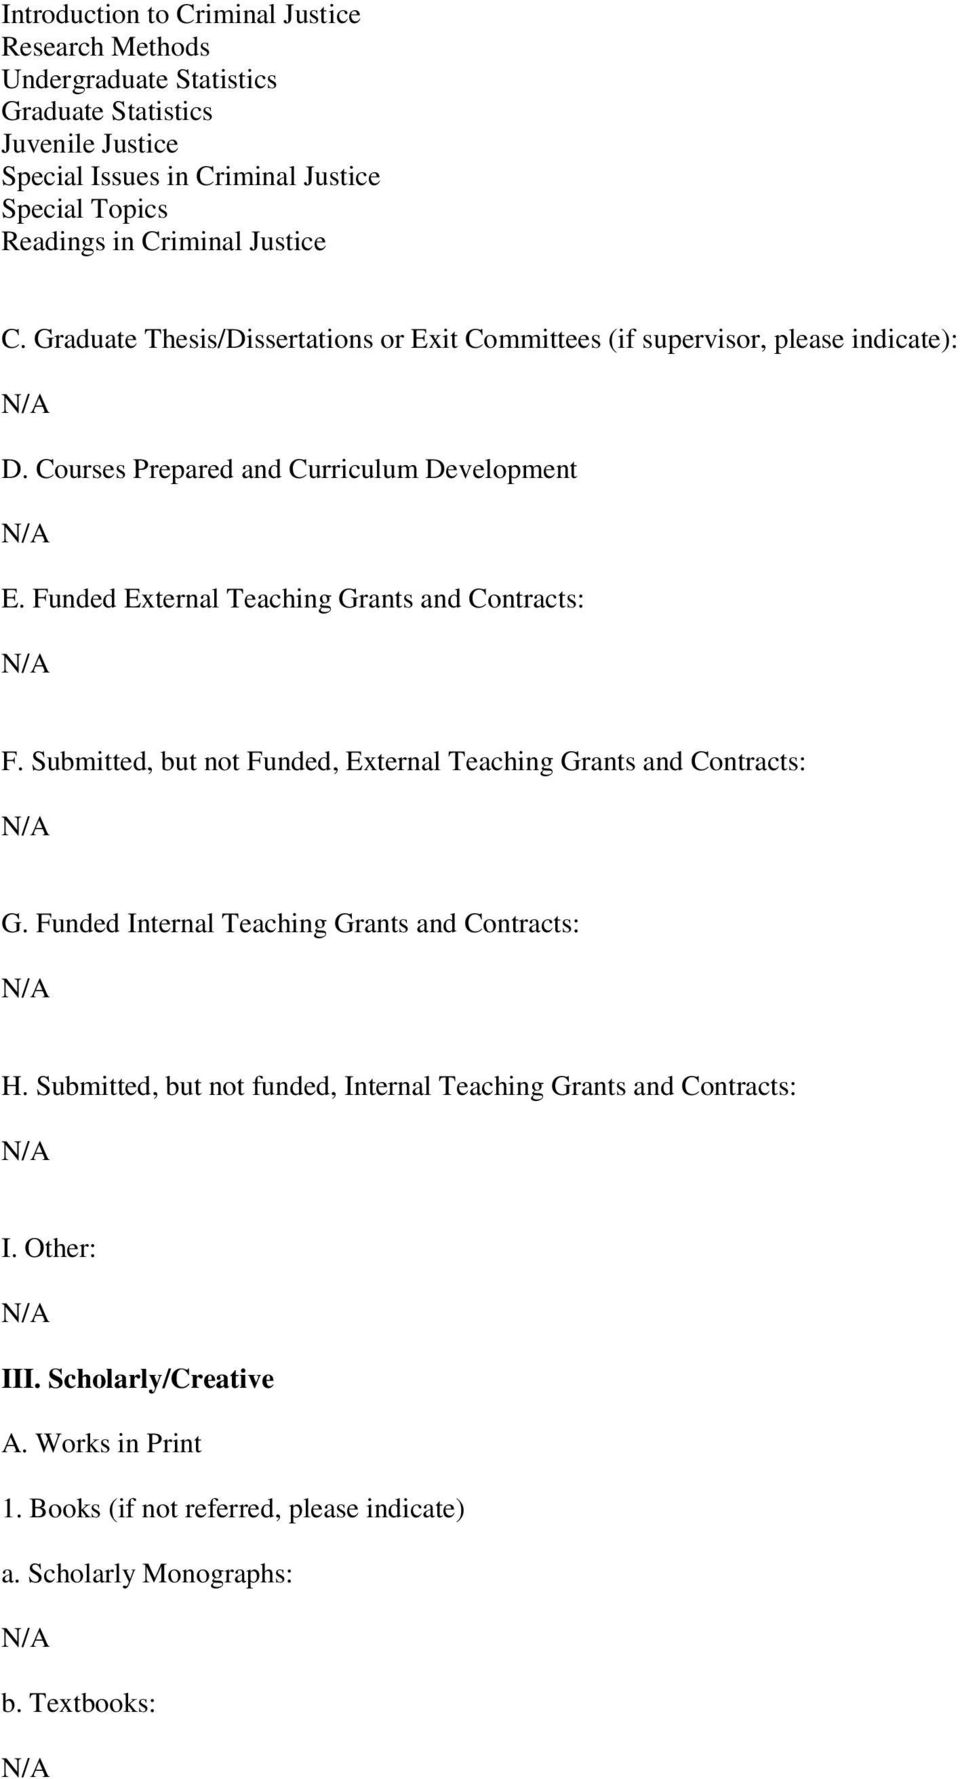 Funded External Teaching Grants and Contracts: F. Submitted, but not Funded, External Teaching Grants and Contracts: G. Funded Internal Teaching Grants and Contracts: H.